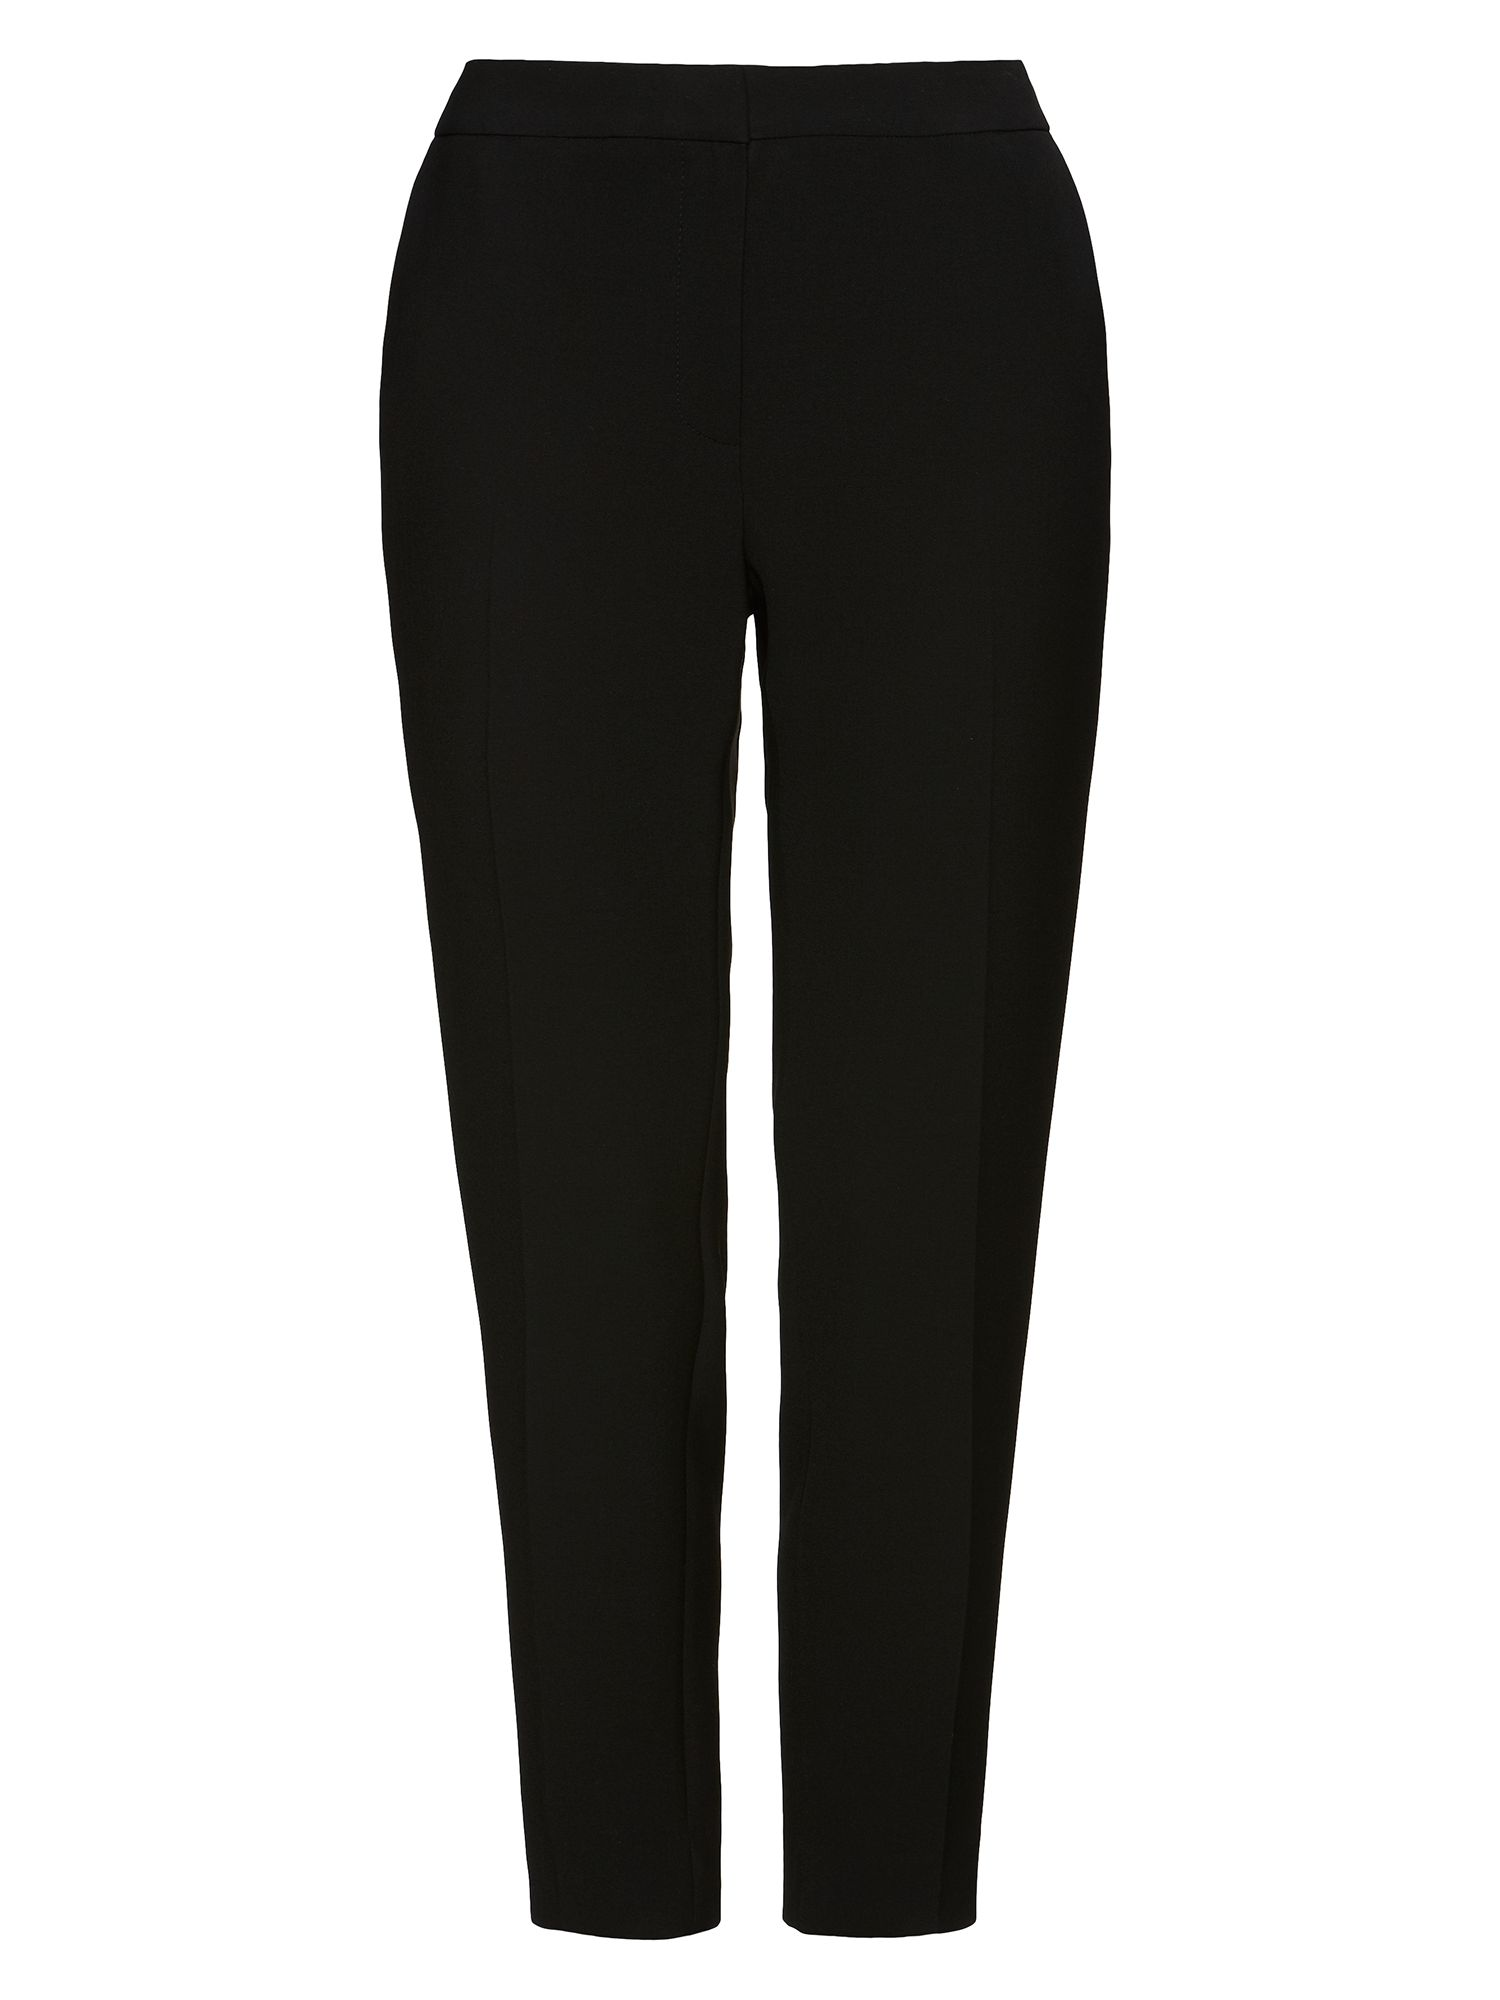 Jaeger Jaeger: Stretch 7/8ths Trousers, Black